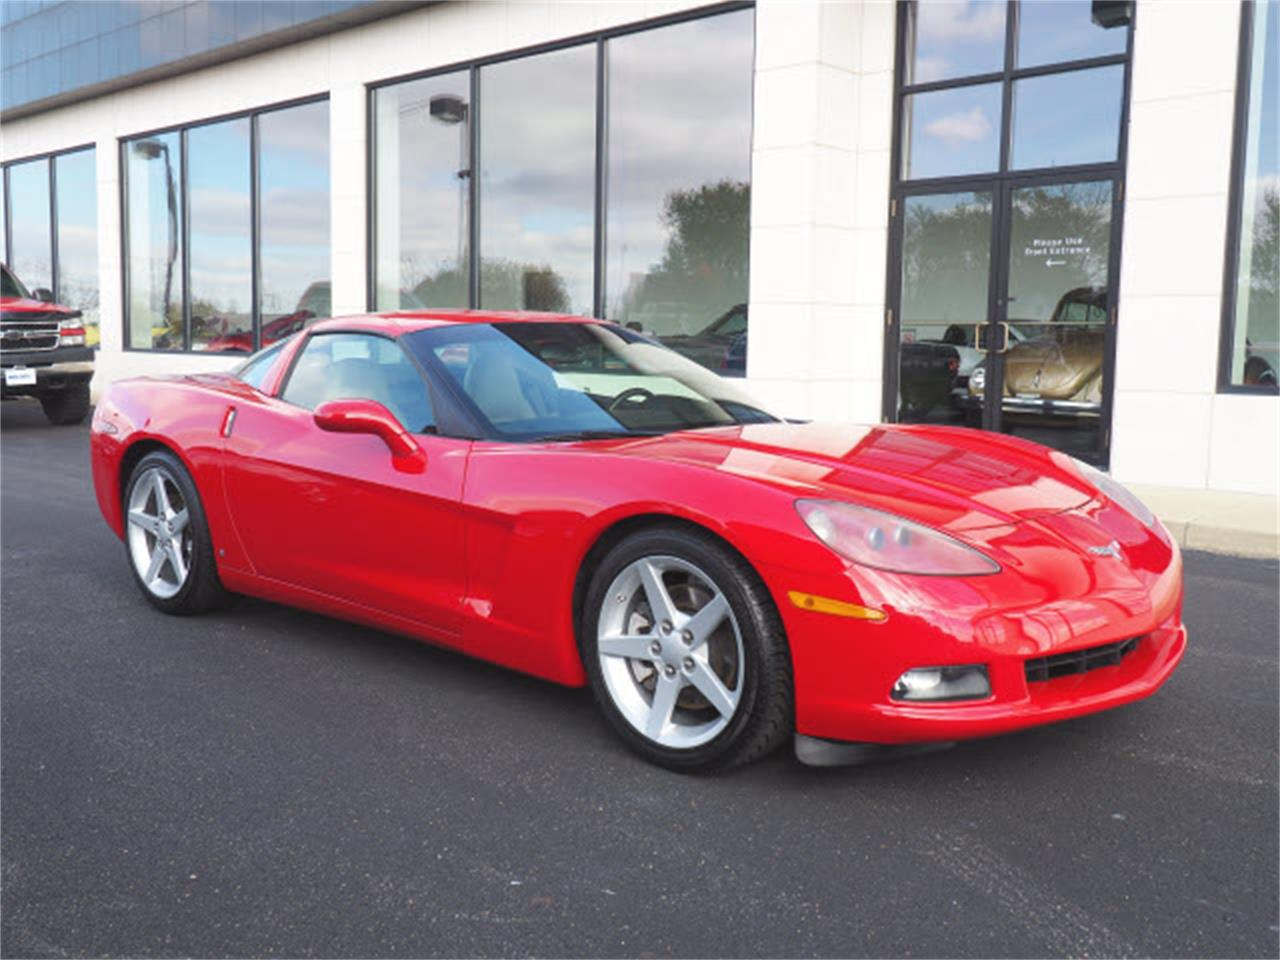 Large Picture of '06 Chevrolet Corvette - $23,999.00 Offered by Nelson Automotive, Ltd. - MB5M